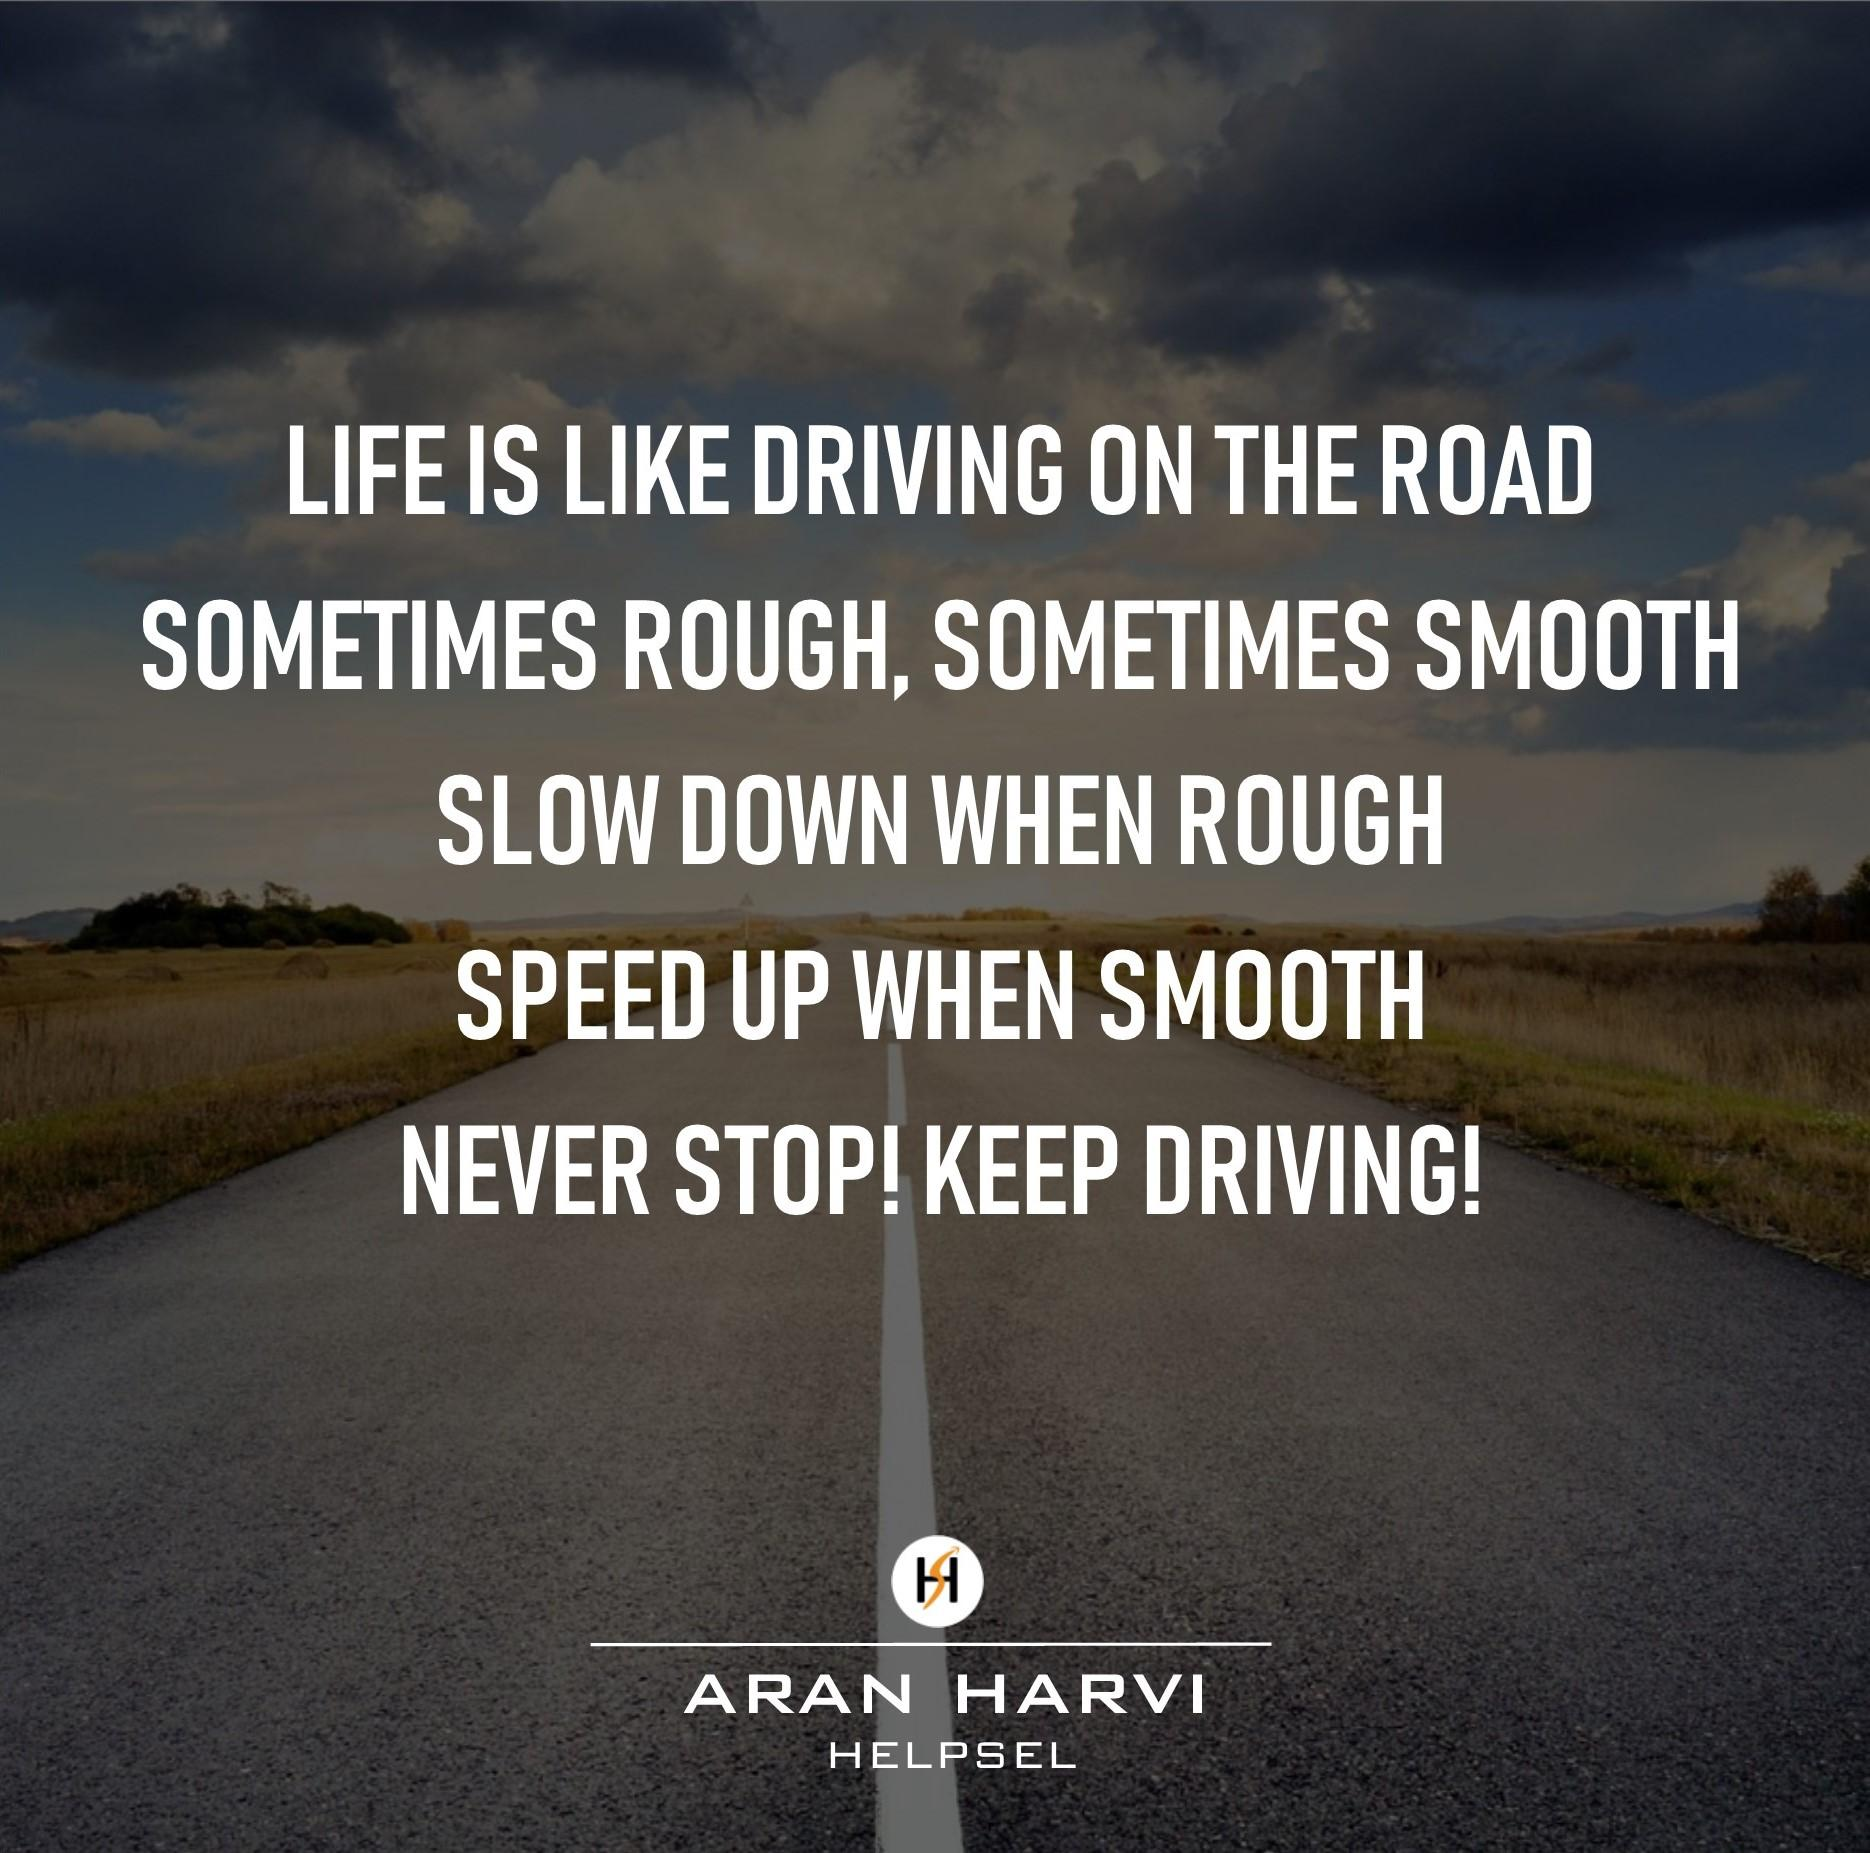 LIFE IS LIKE DRIVING ON THE ROAD SOMETIMES ROUGH, SOMETIMES SMOOTH SLOW OOWN WHEN ROUGH SPEEO UP WHEN SMOOTH NEVER STOP! KEEP DRIVING! m ARAN https://inspirational.ly